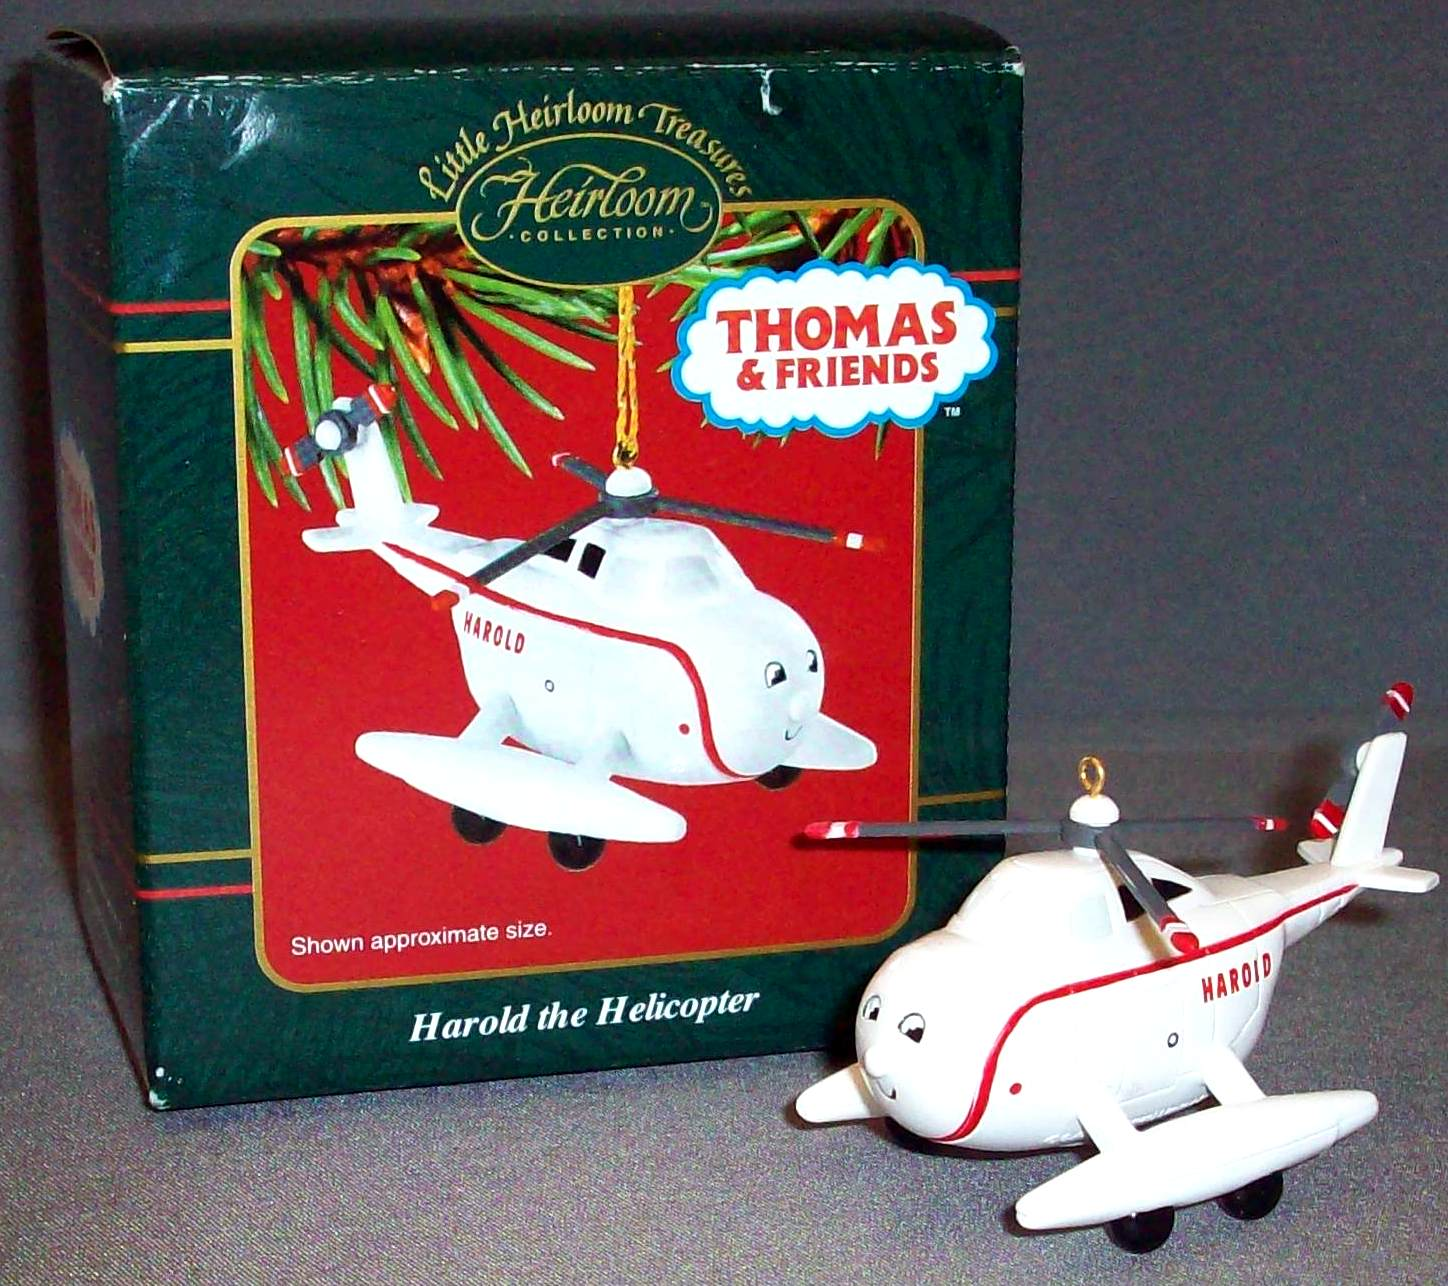 Thomas the train christmas ornament - Harold The Helicopter Ornament